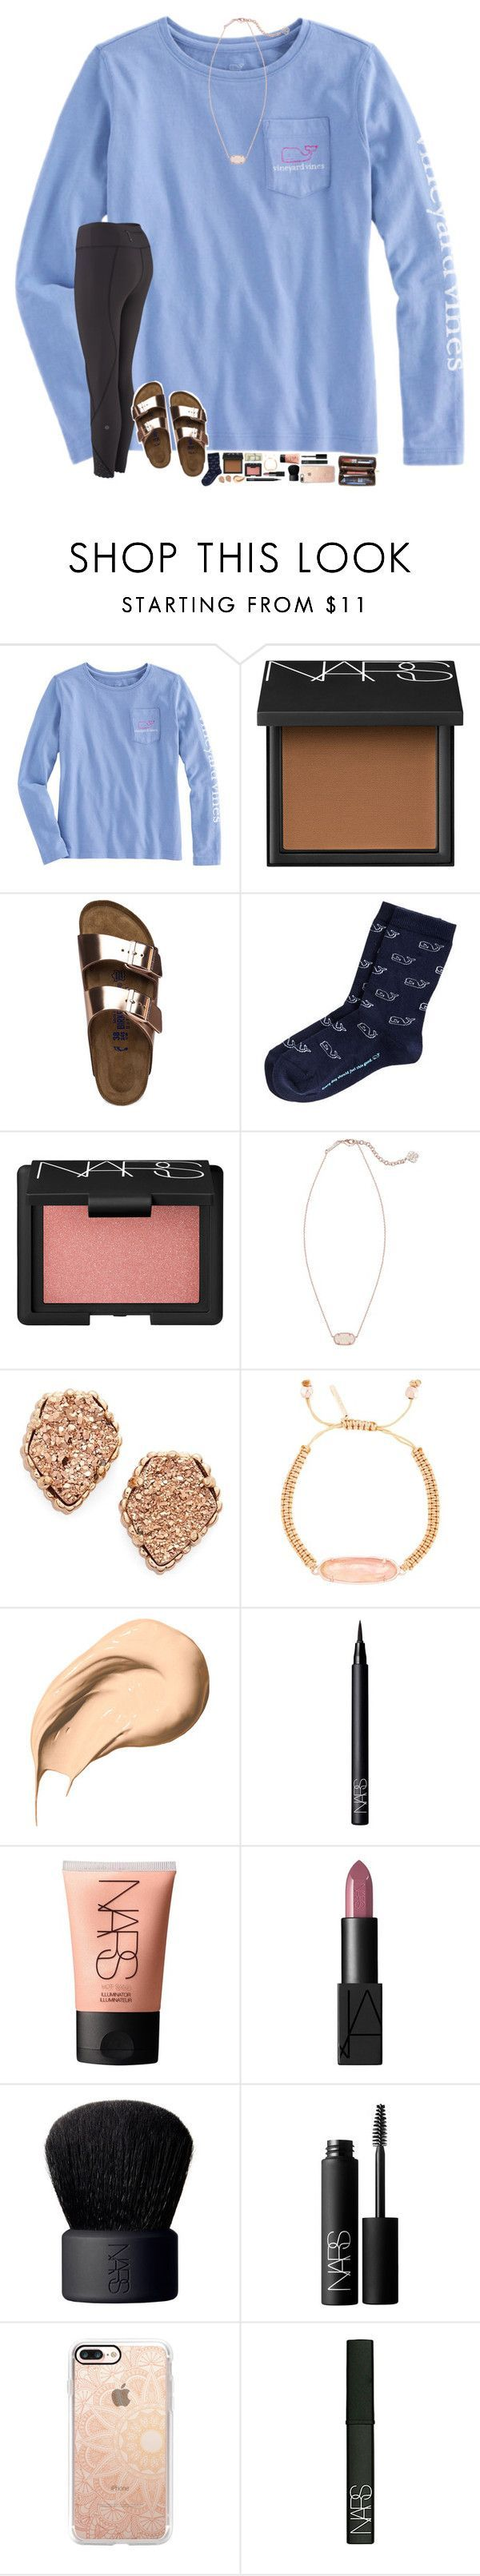 """""""things just got 100% more complicated."""" by hopemarlee ❤ liked on Polyvore featuring NARS Cosmetics, Birkenstock, Kendra Scott, Bobbi Brown Cosmetics, Louis Vuitton, Casetify and hmsloves"""